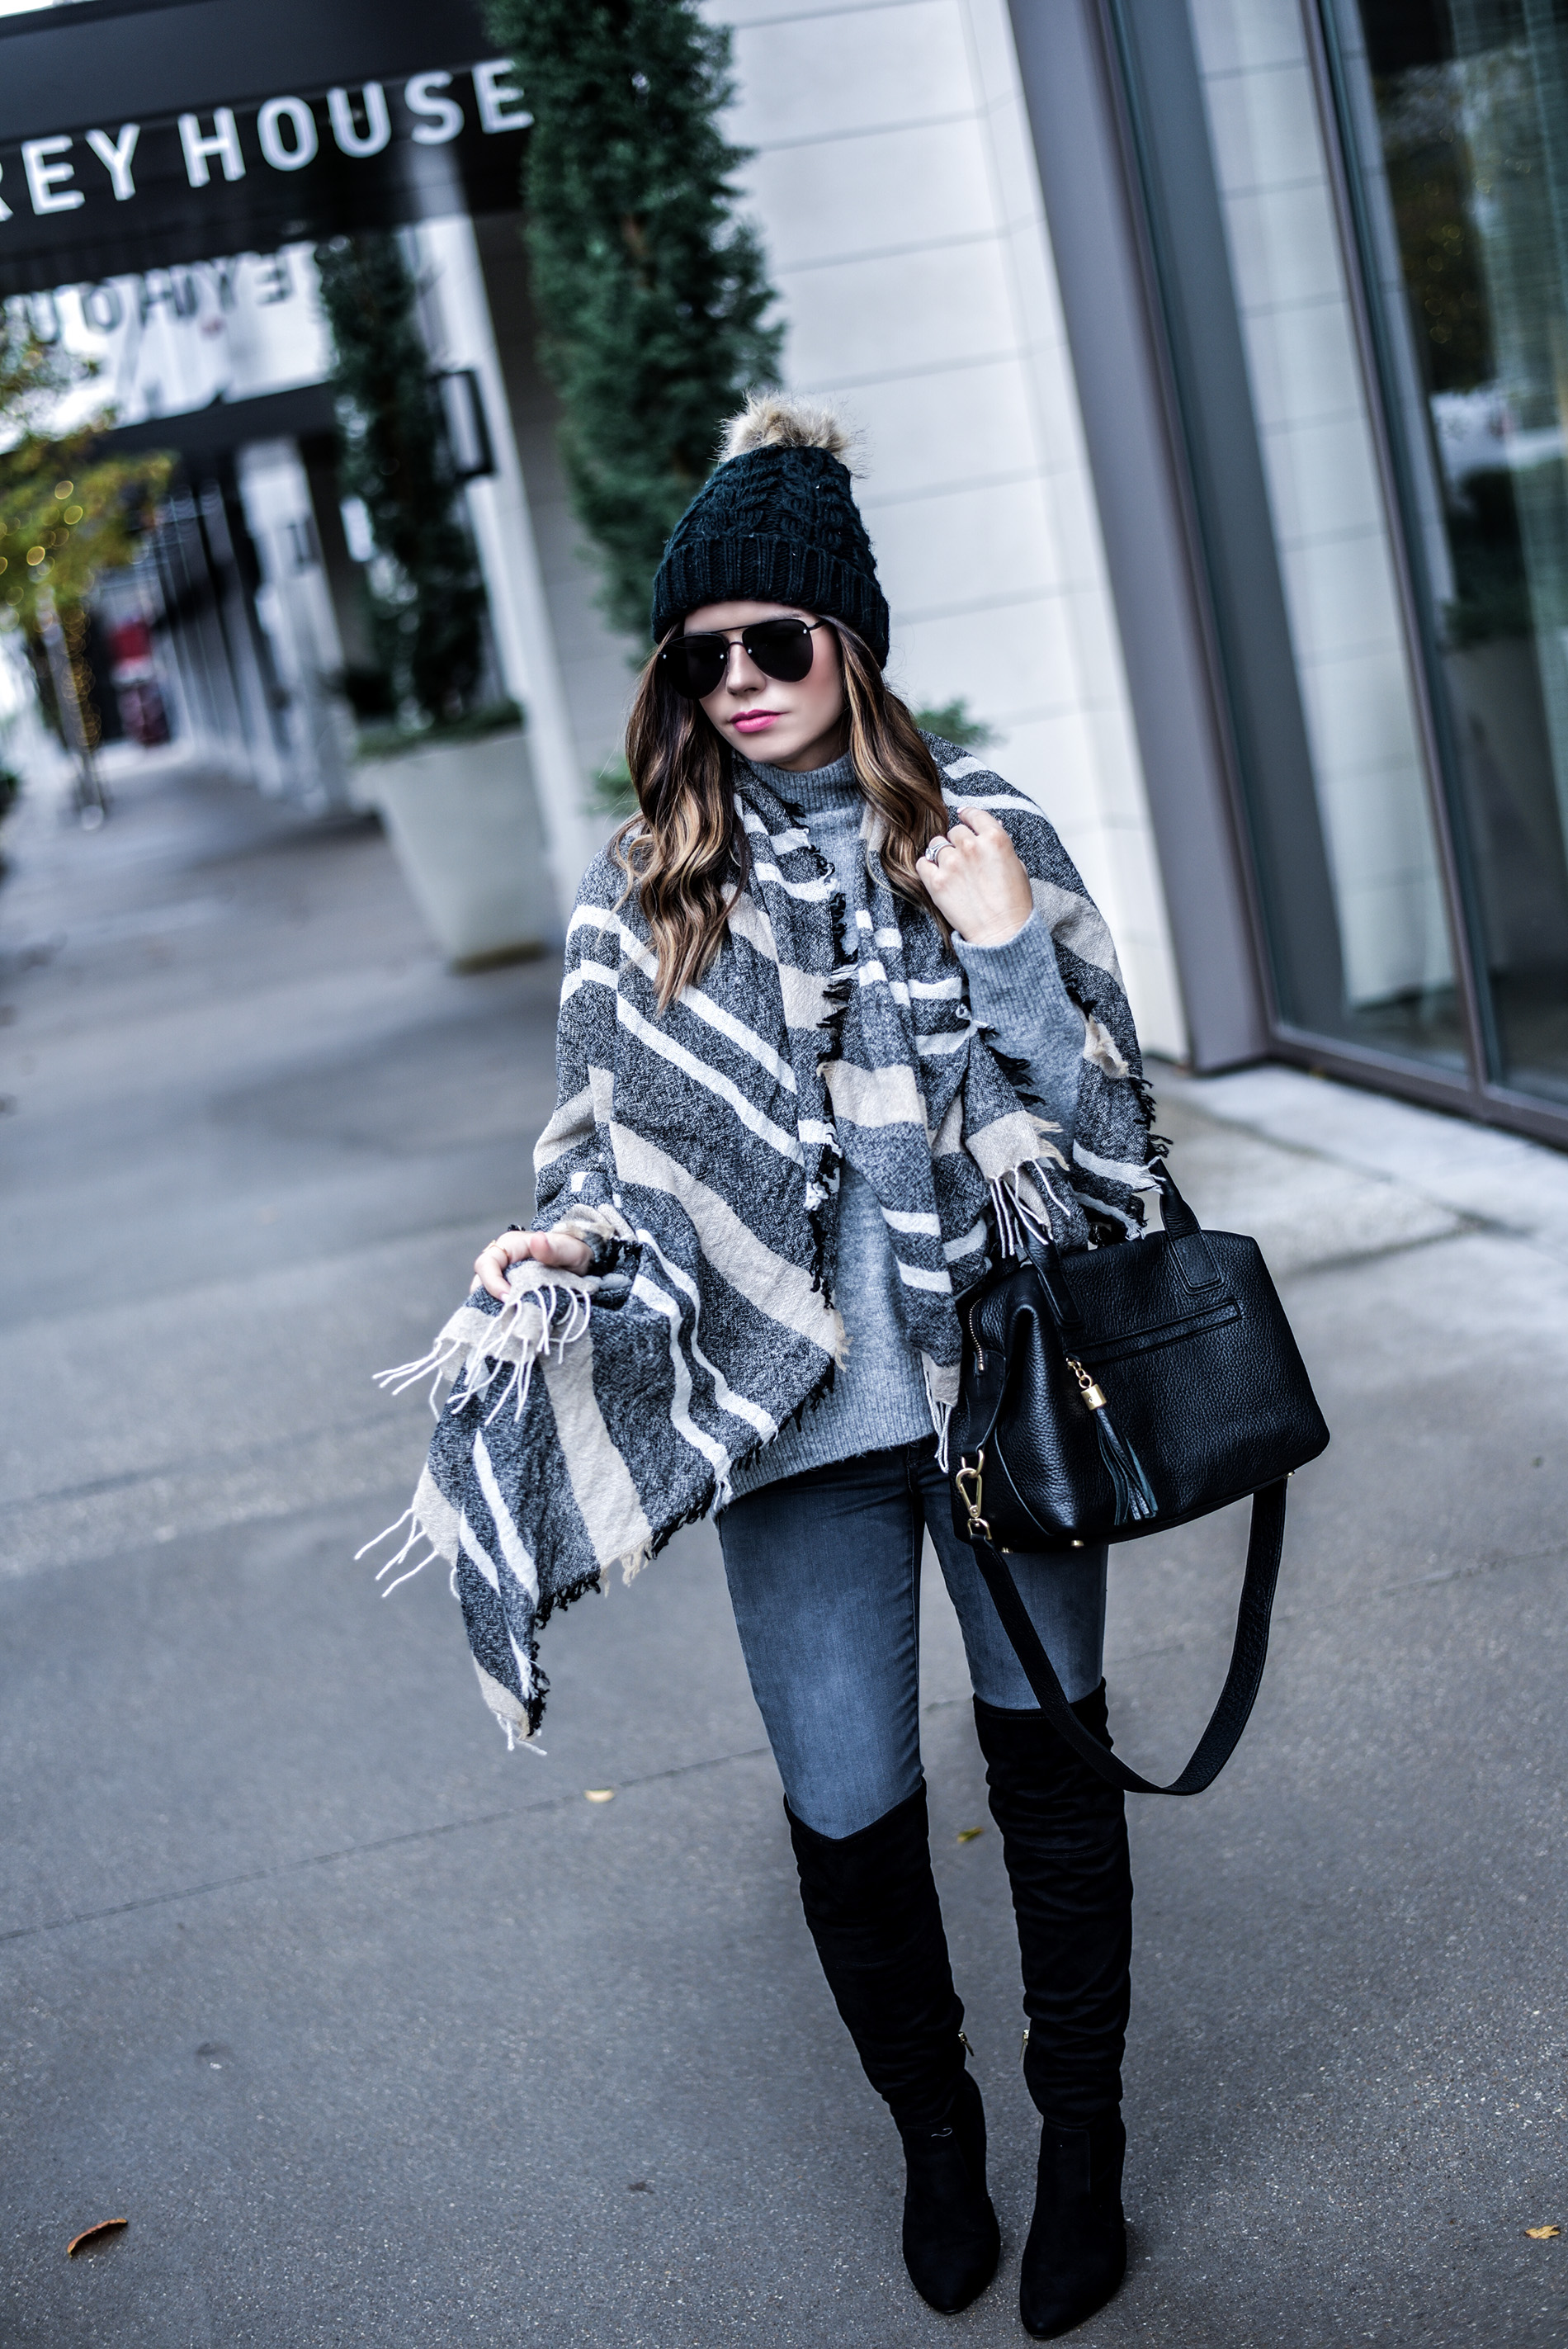 Houston fashion blogger Tiffany Jais wearing dark grey skinny jeans with Ivanka trump black over the knee boots, and a made well scarf | Women's fashion